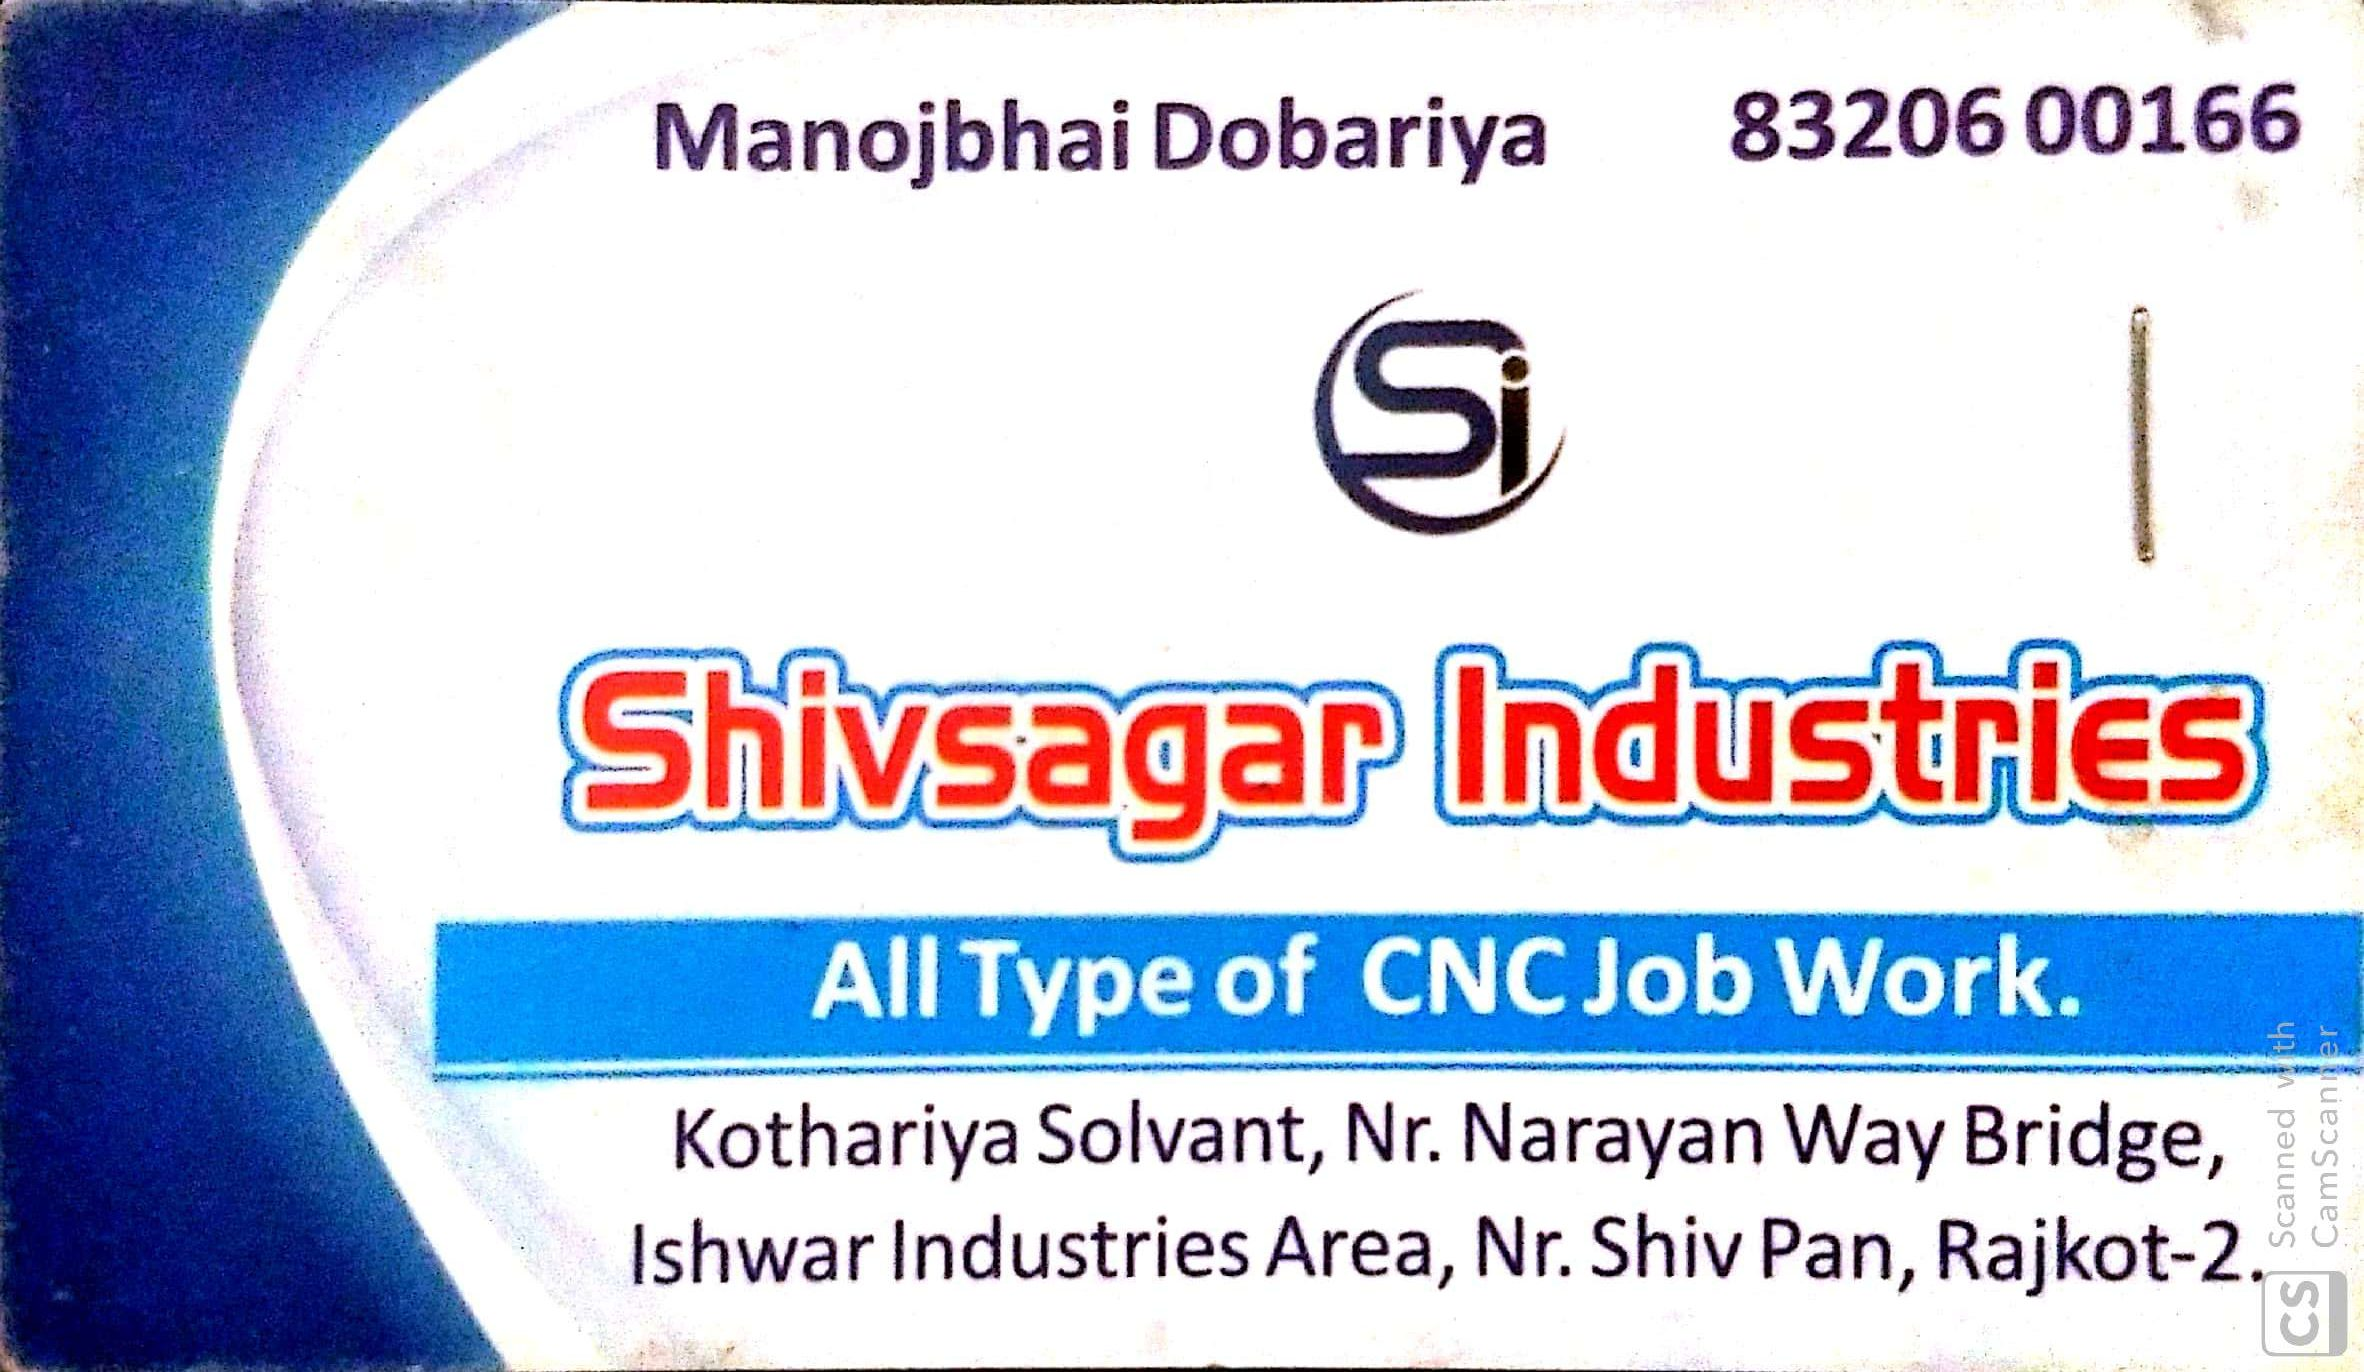 Shivsagar Industries